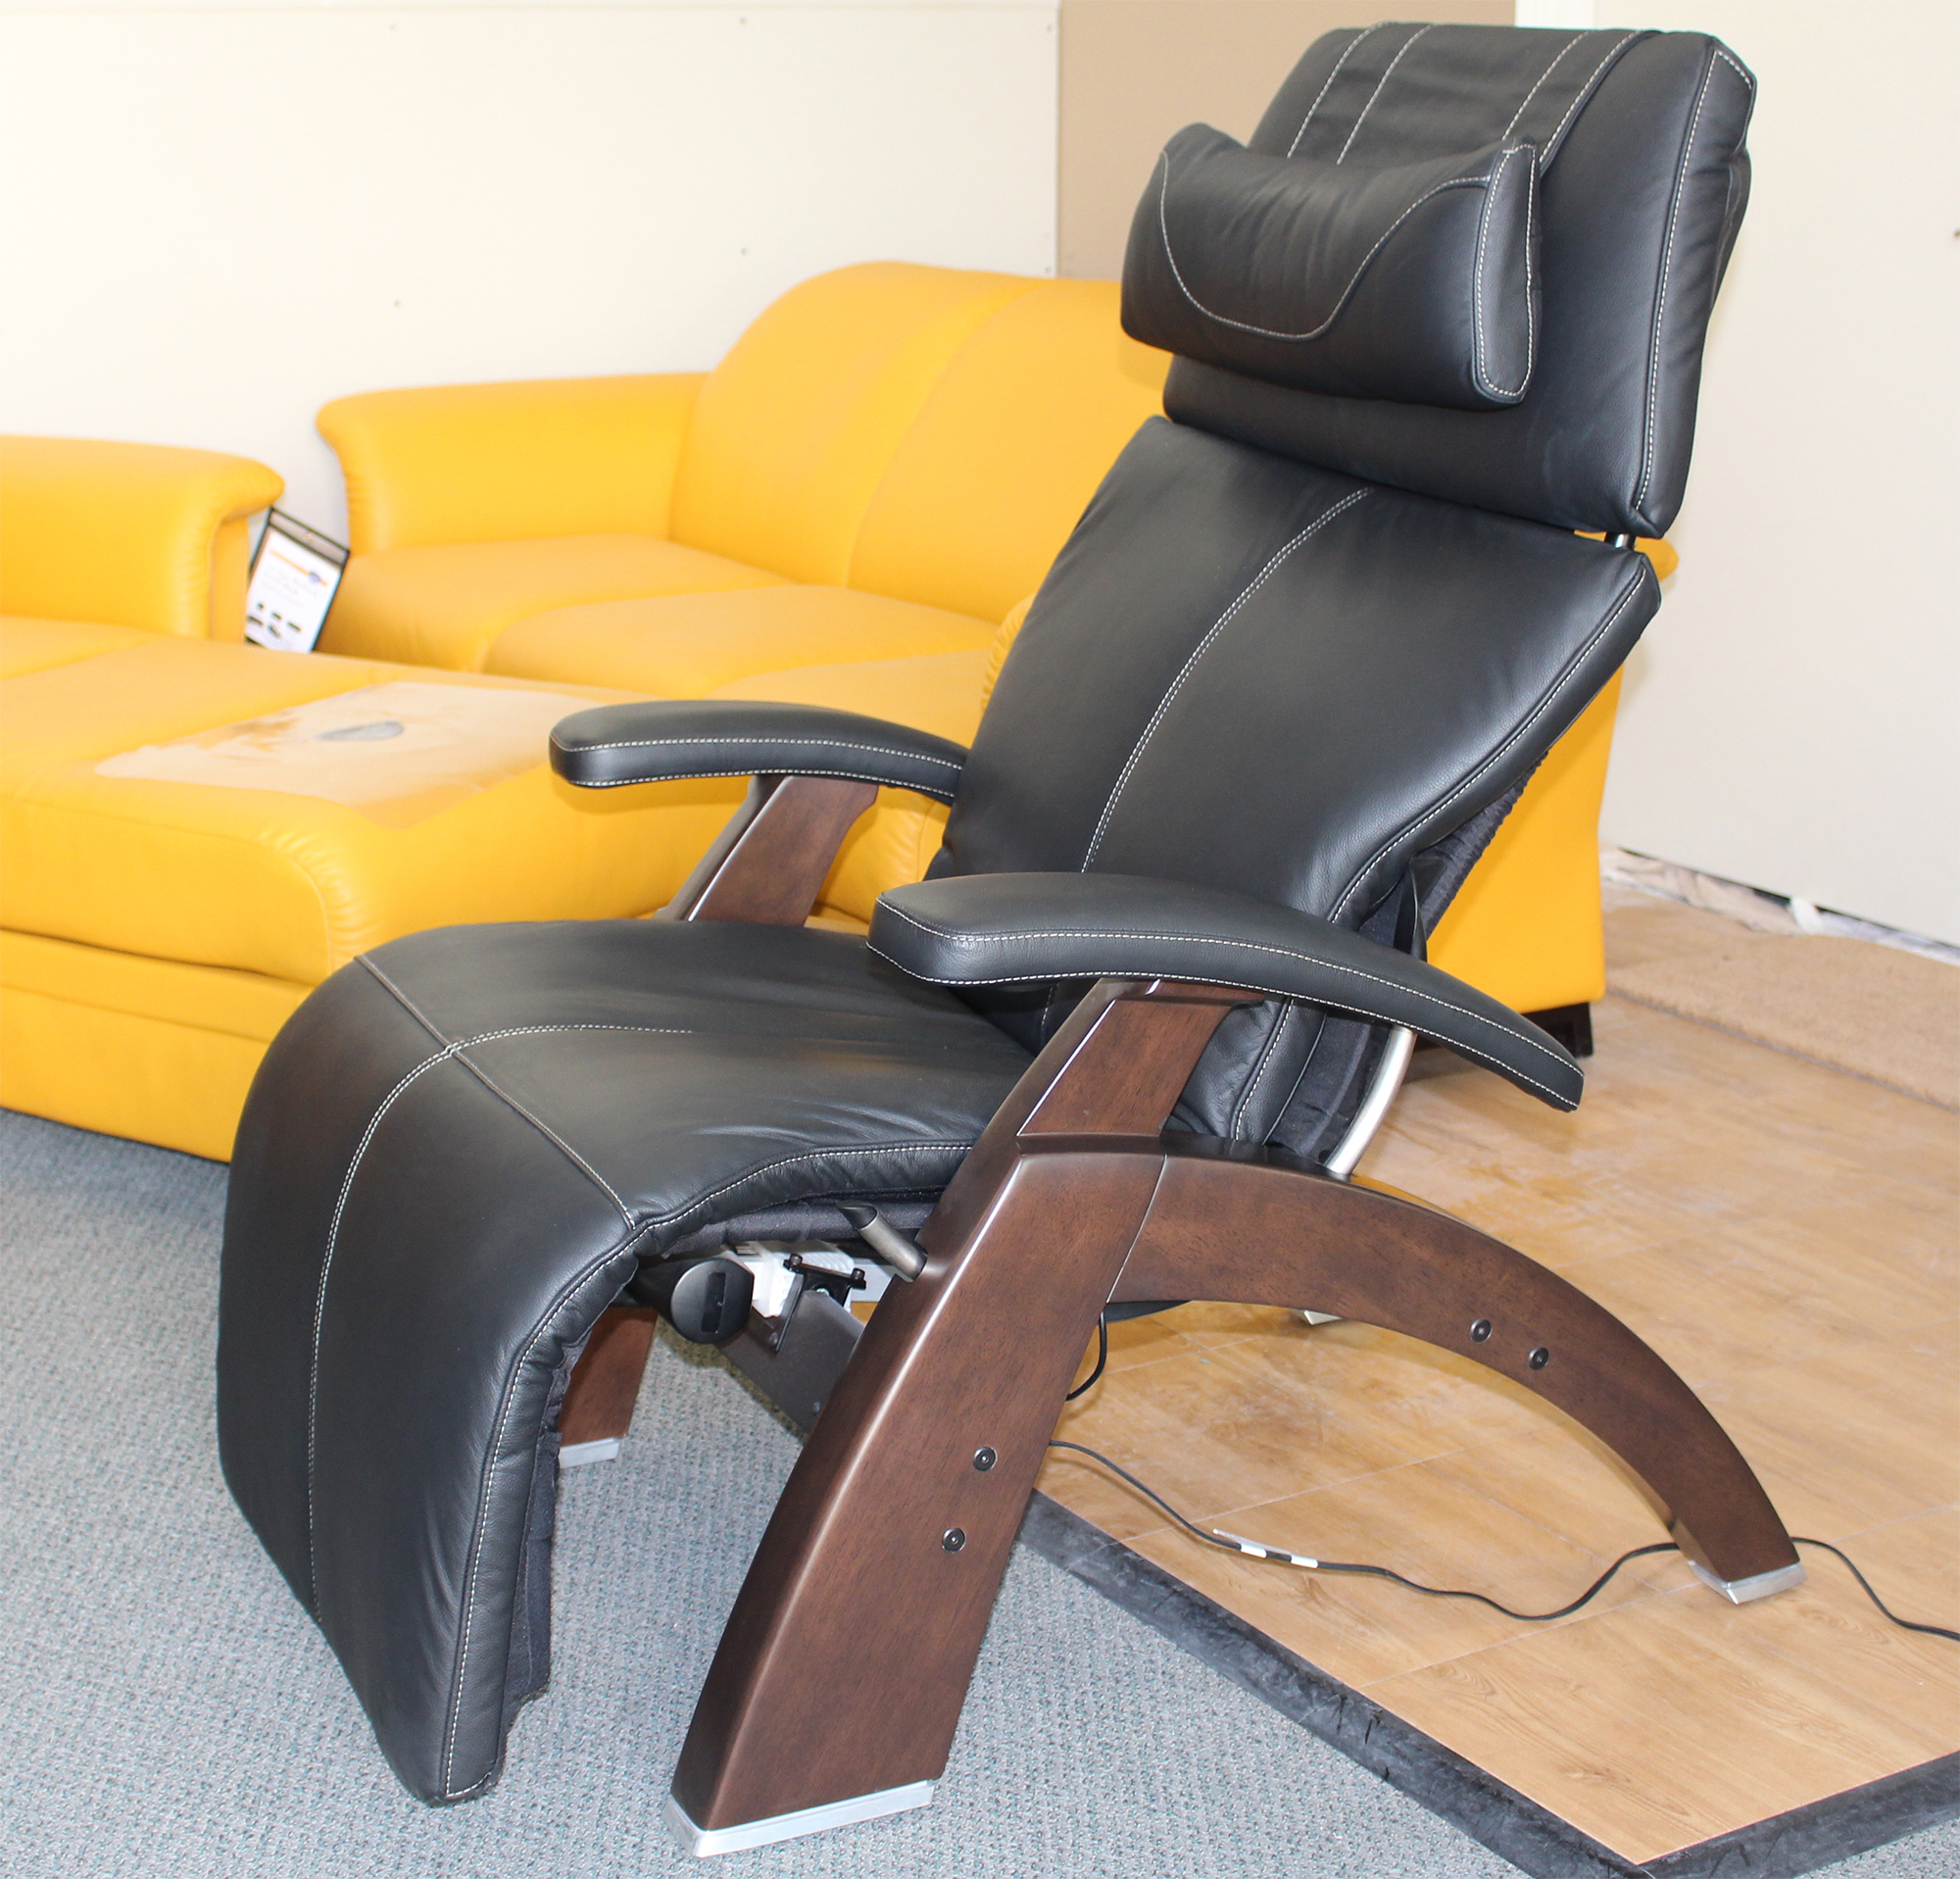 htm diagram perfect pad for touch zerogravity set human the backstore sets by chair recliner replacement leather